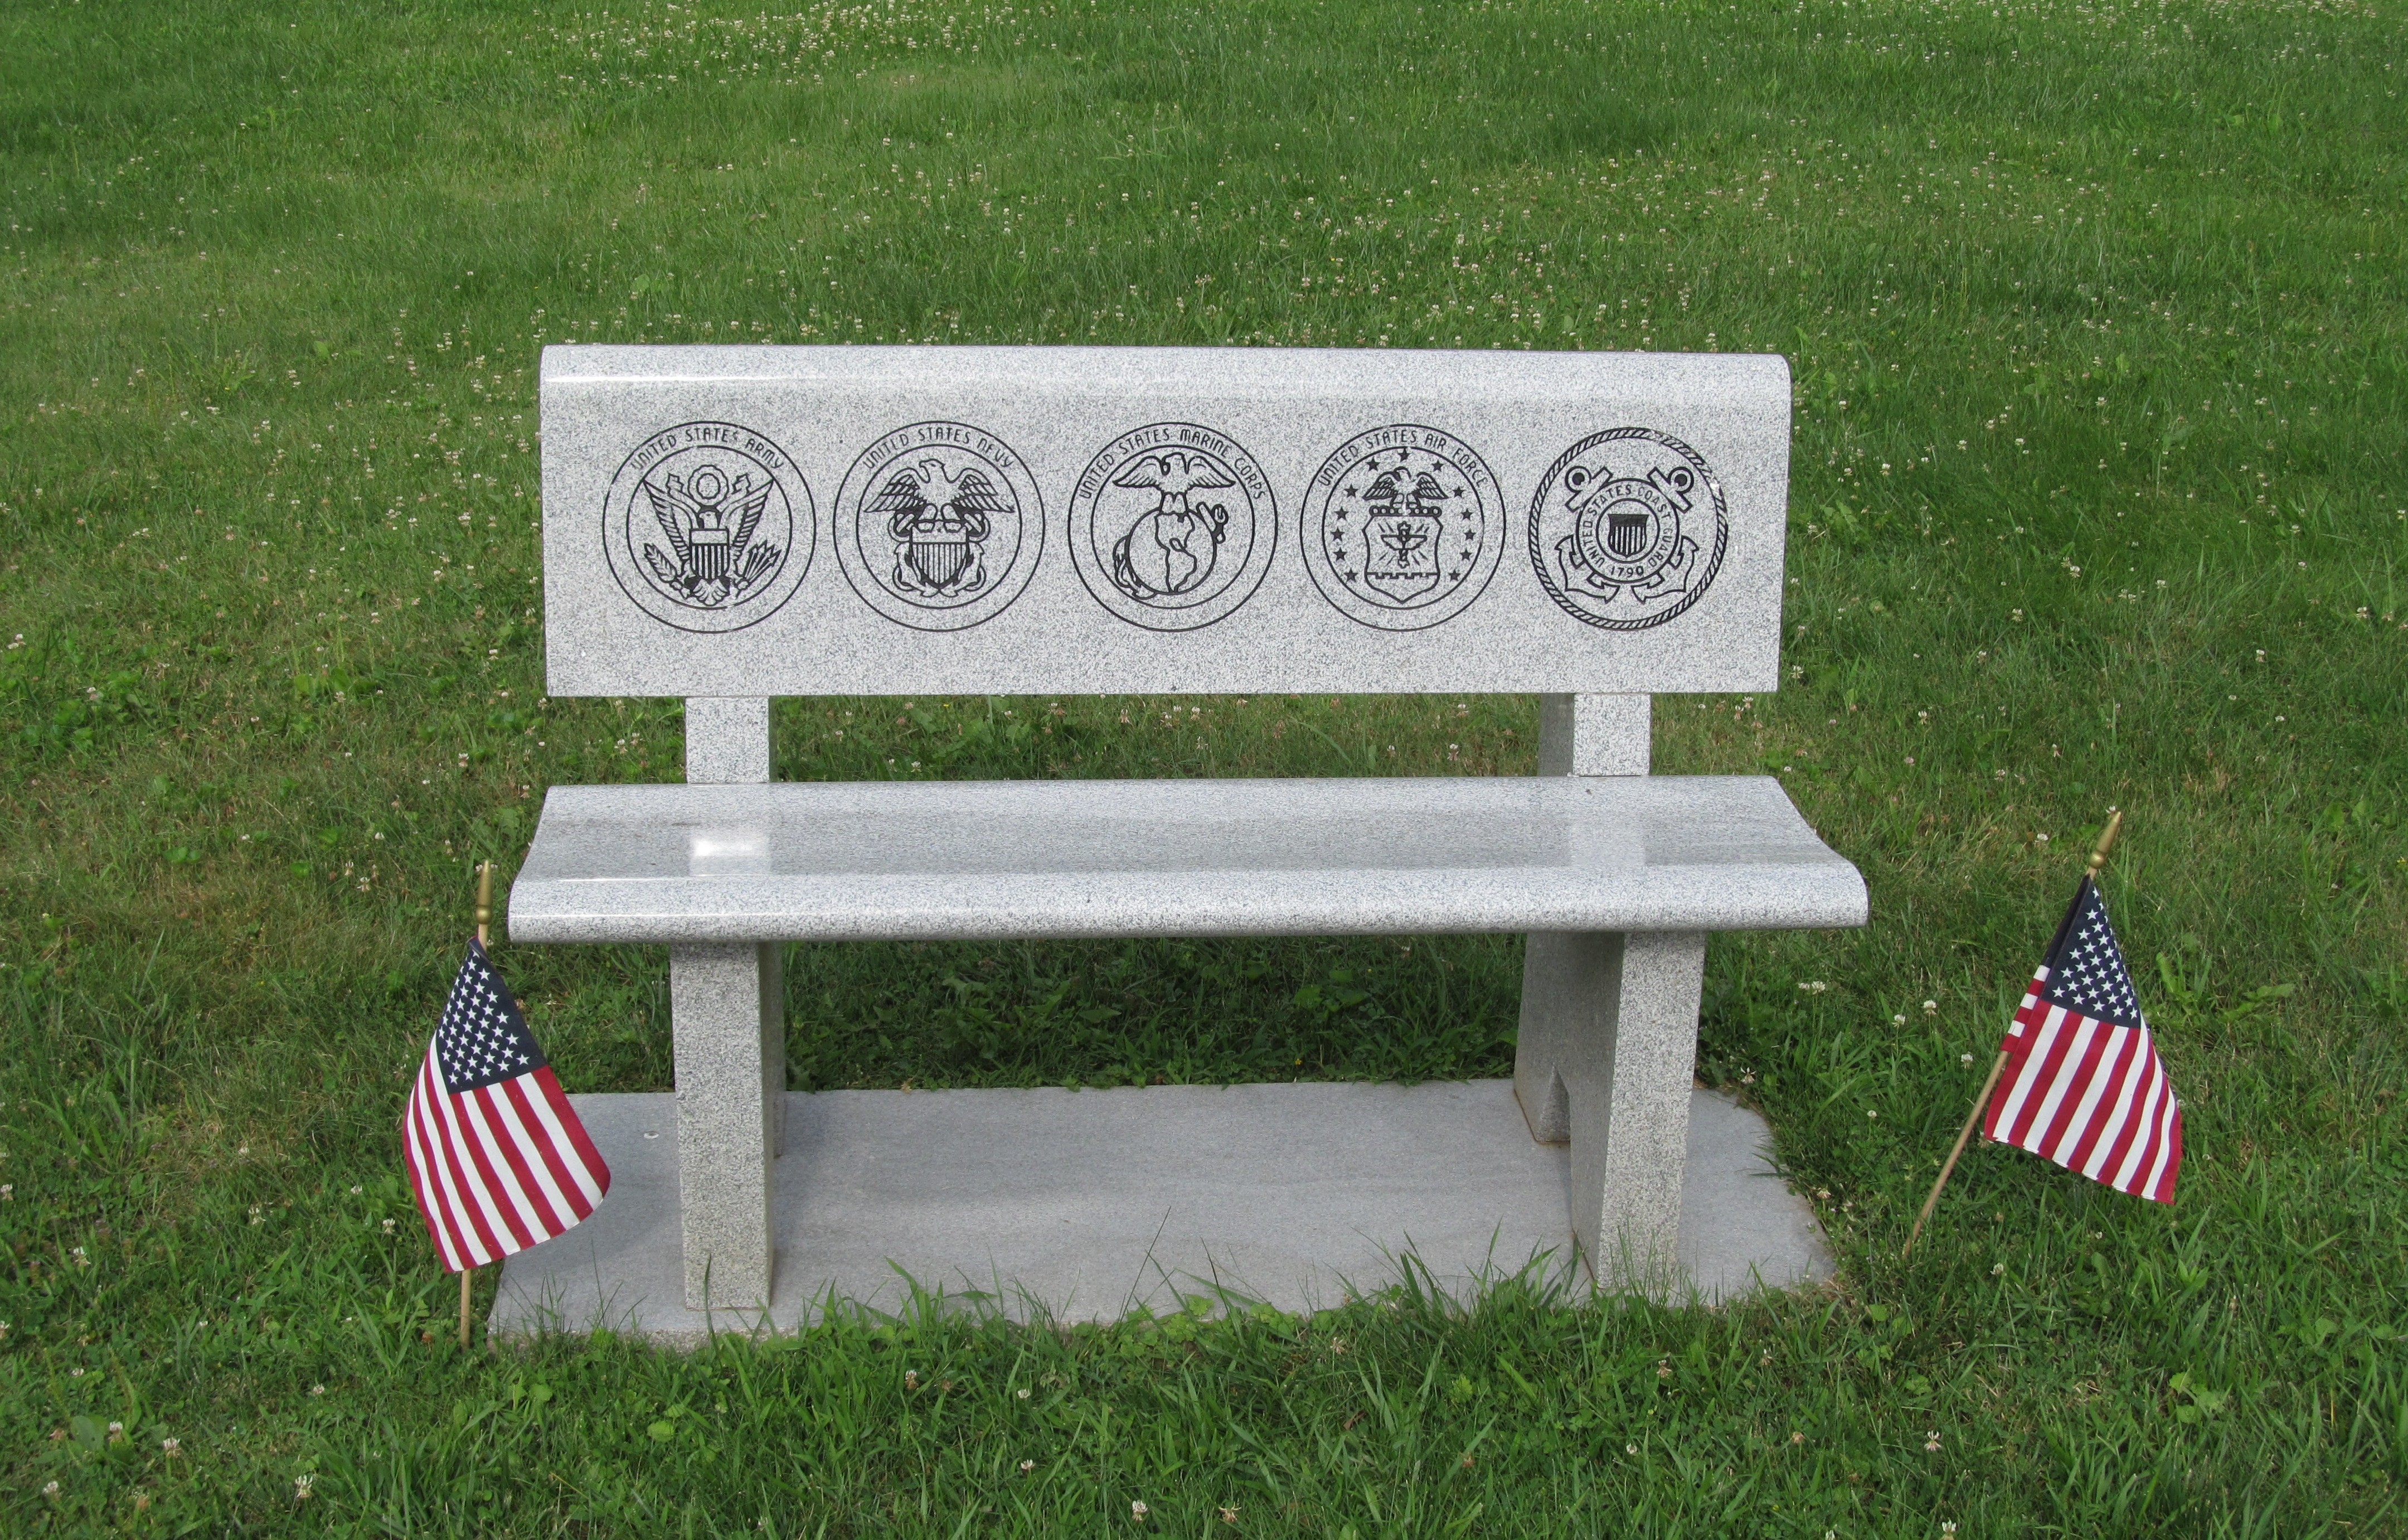 detail of carved granite bench with symbols of five military branches